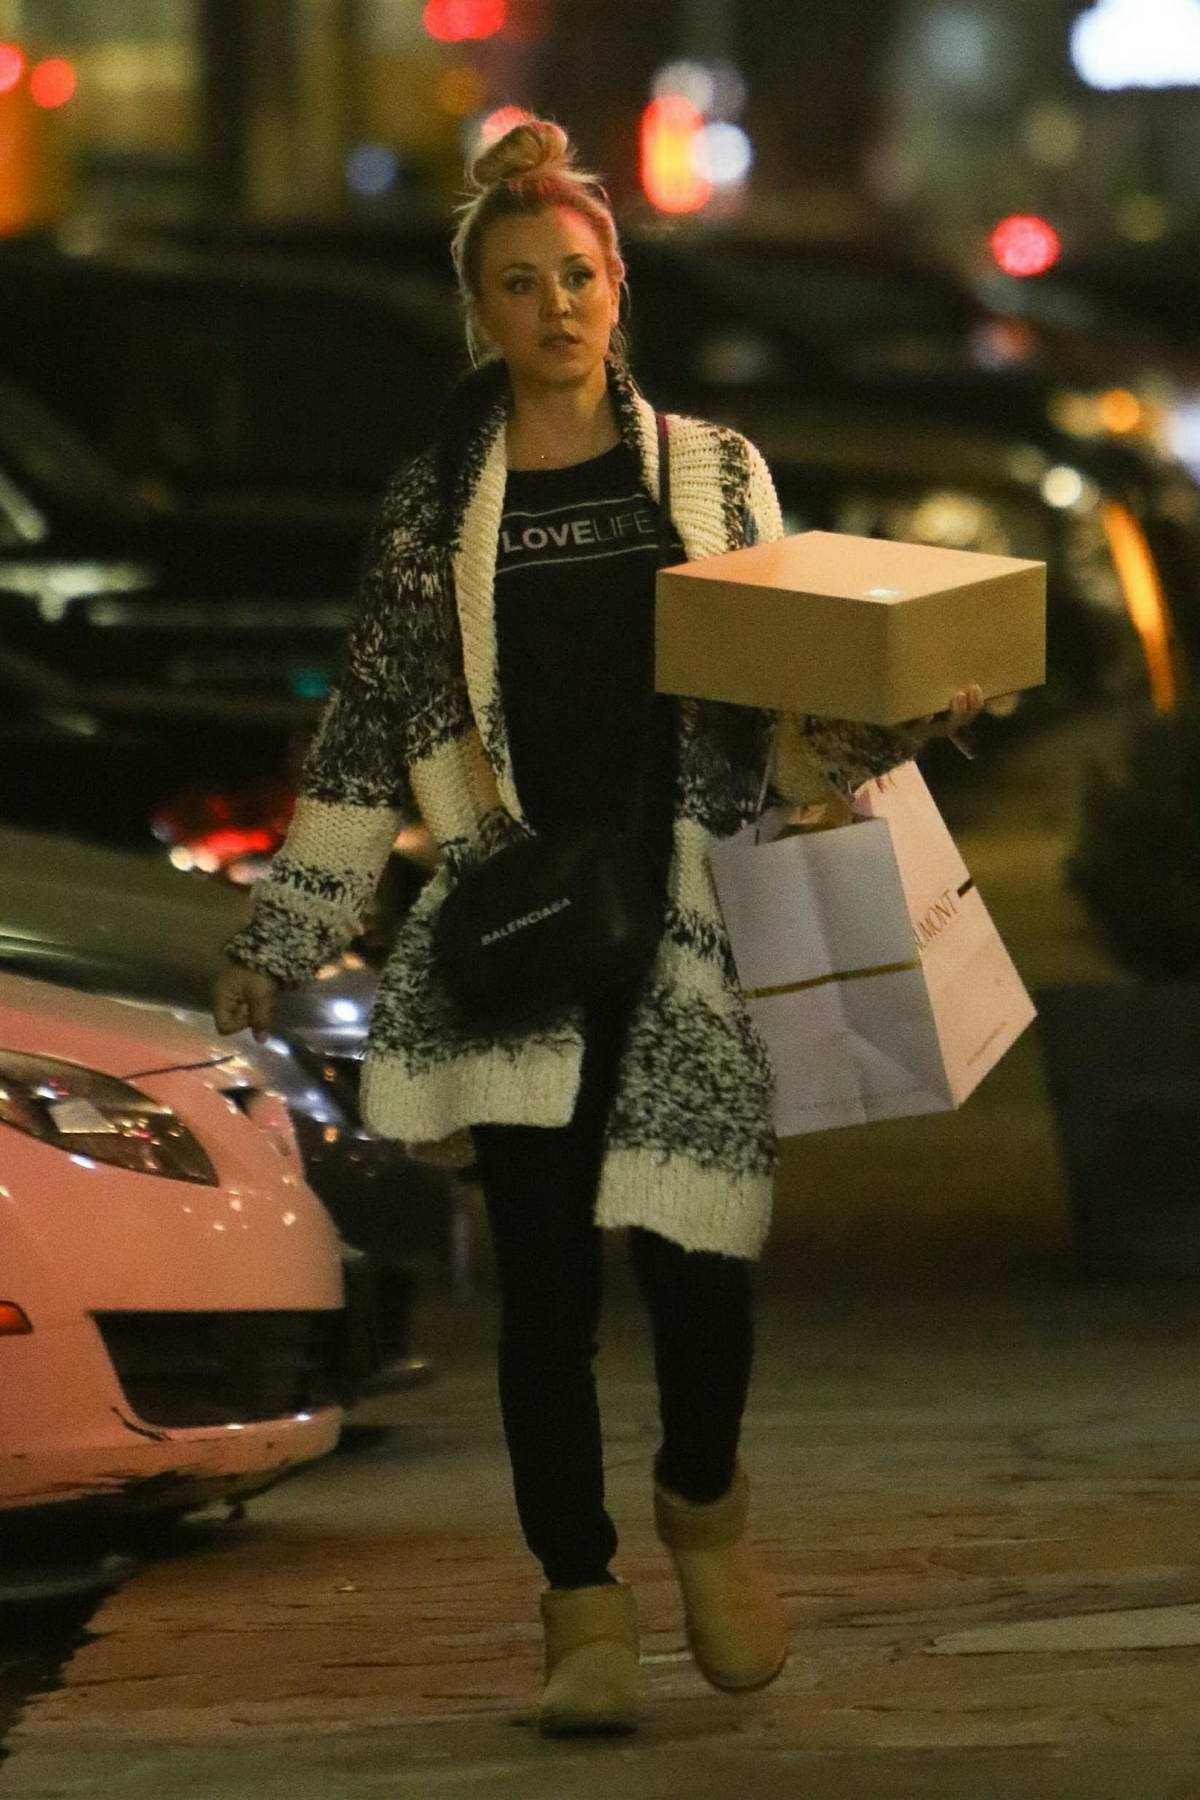 Kaley Cuoco shops for Valentine's Day with her fiance Karl Cook in Los Angeles